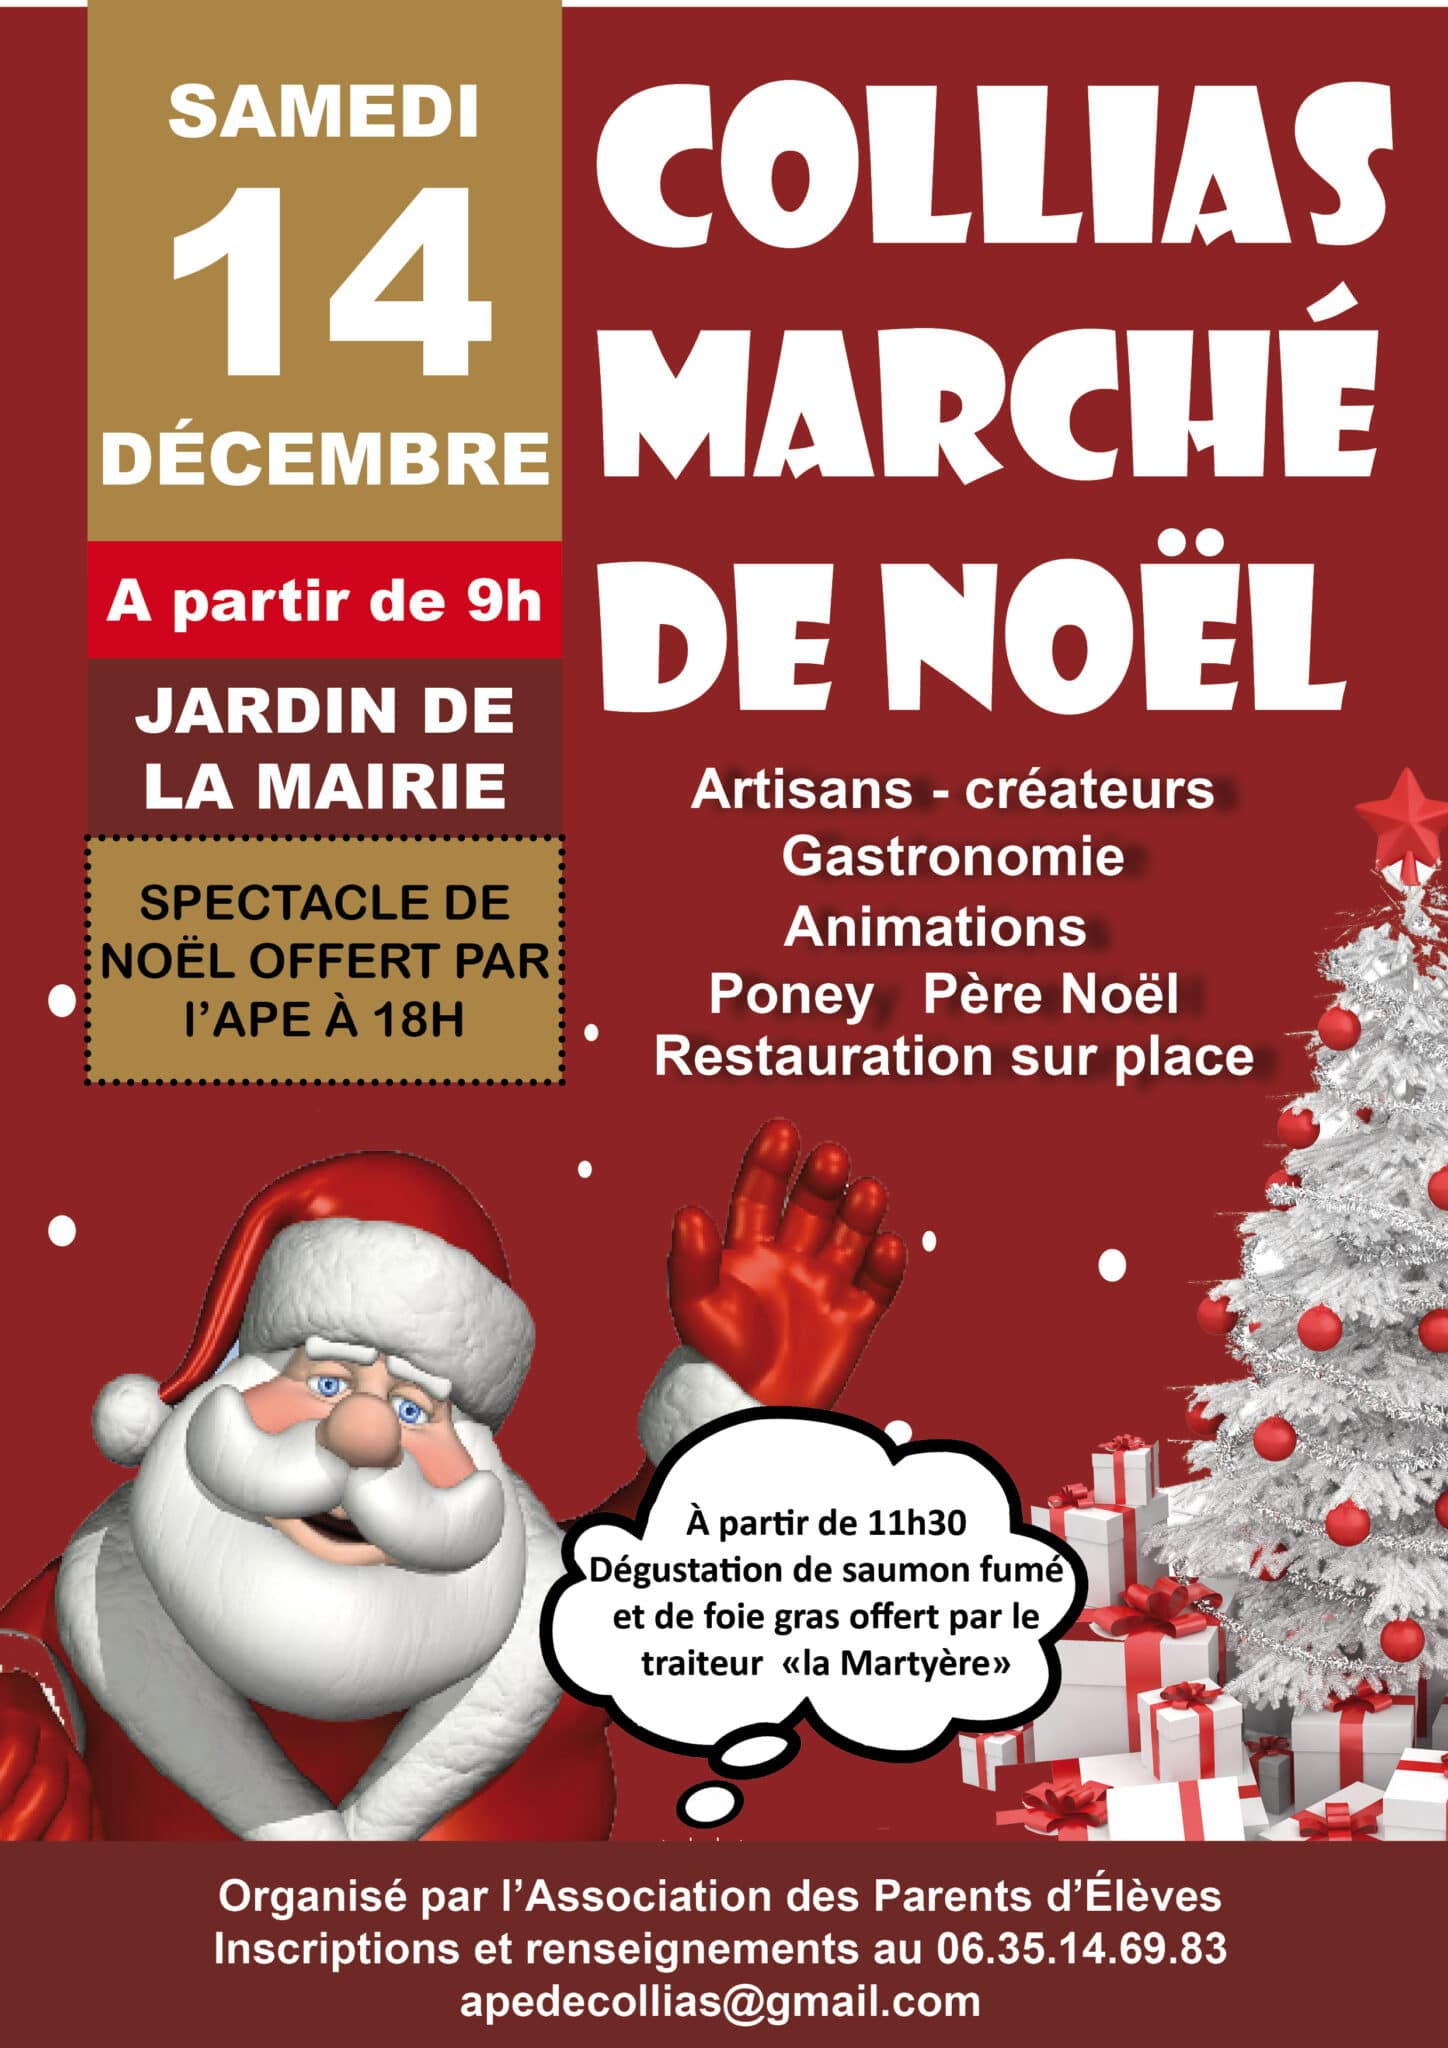 Marché de Noël 2019 de Collias